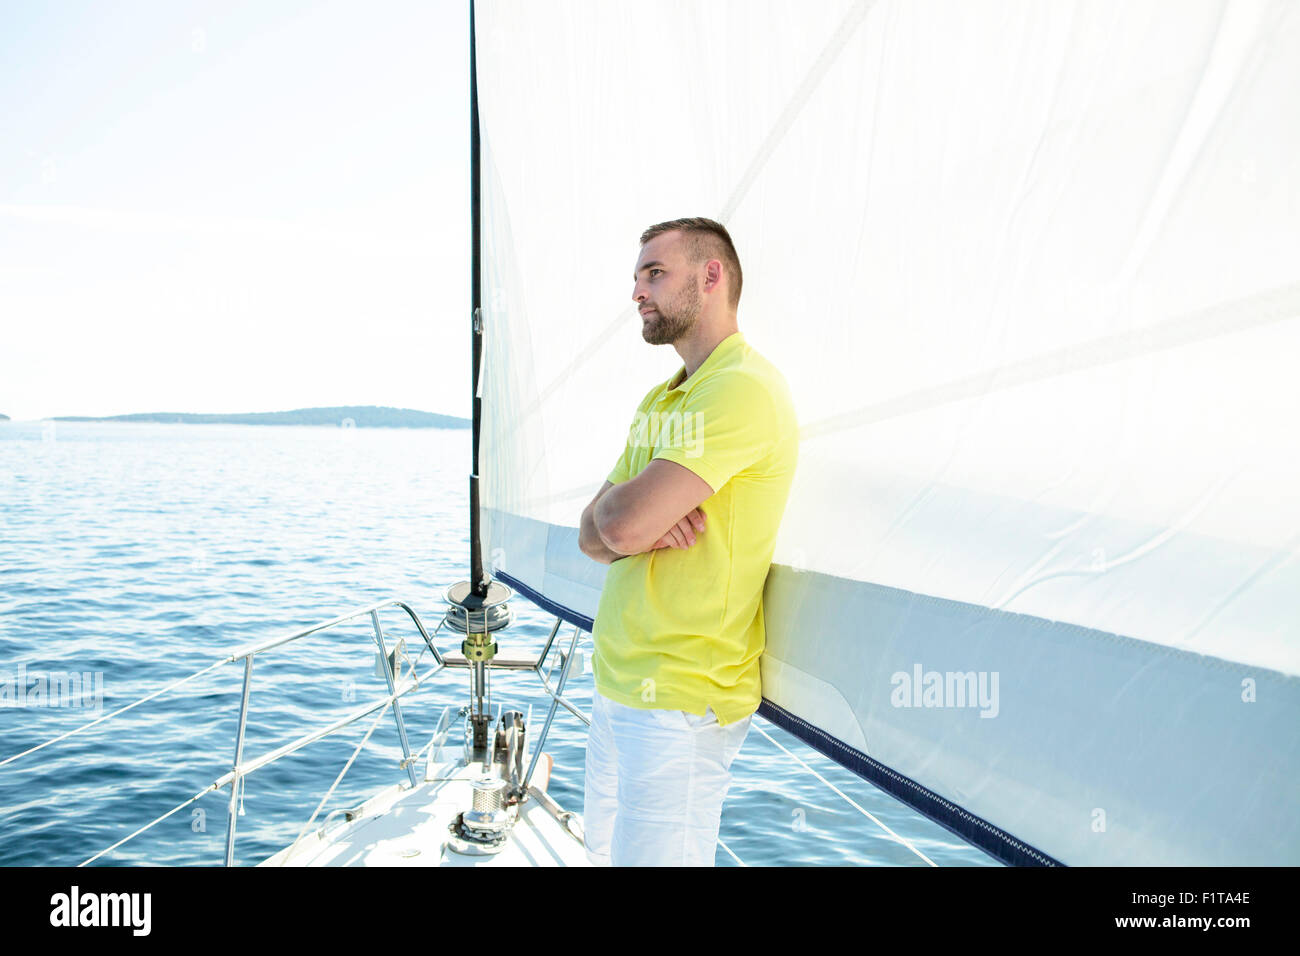 Man standing arms crossed on sailboat, Adriatic Sea - Stock Image